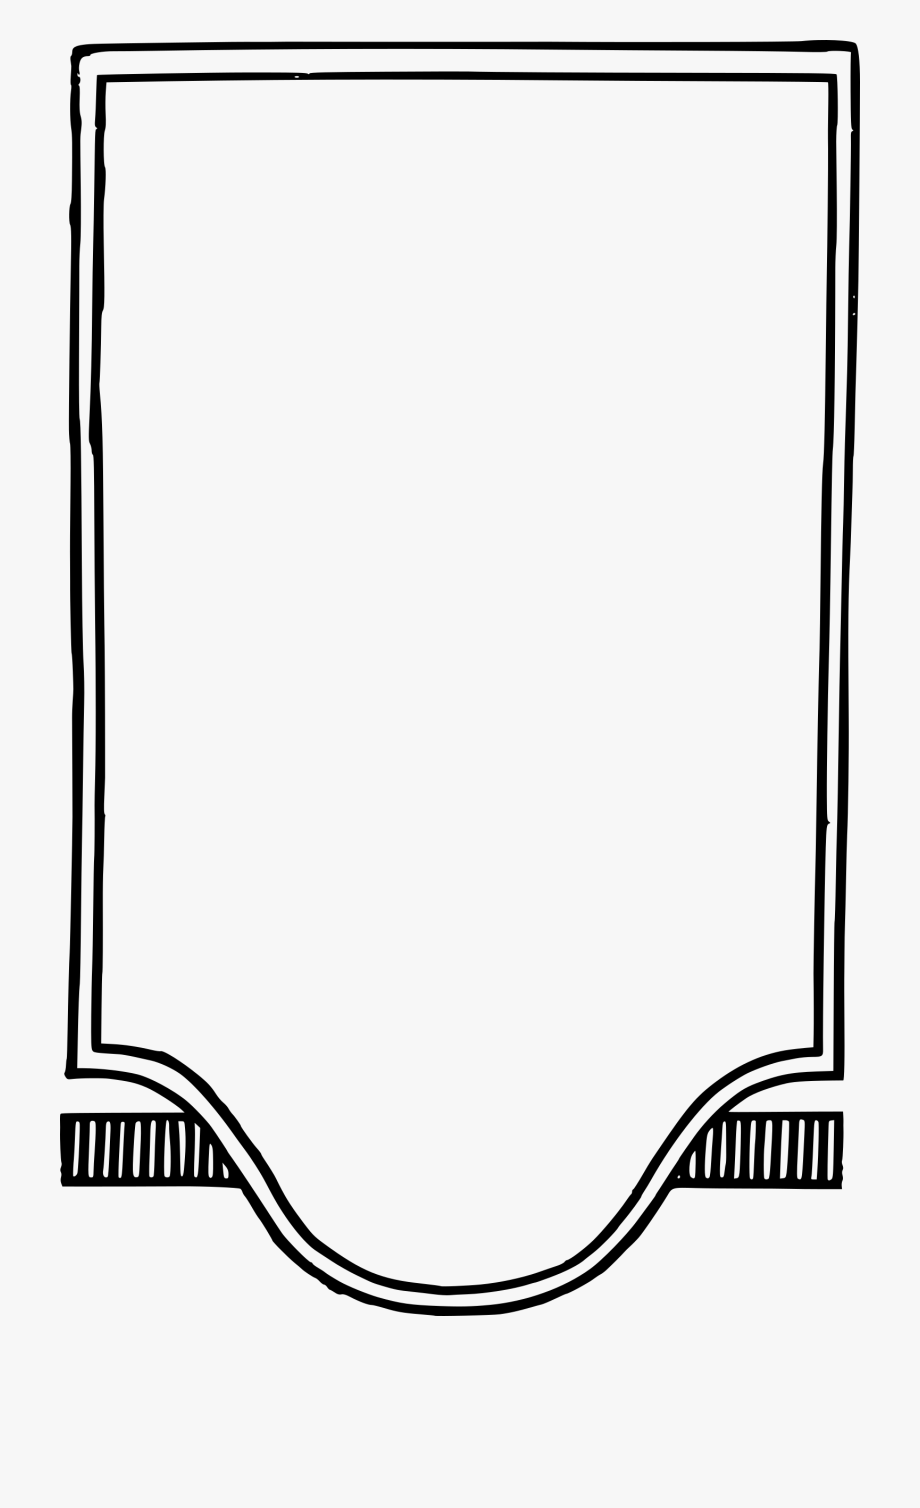 Simple picture frame clipart picture royalty free download Clipart Freeuse Download Simple Rectangle Frame Clipart ... picture royalty free download